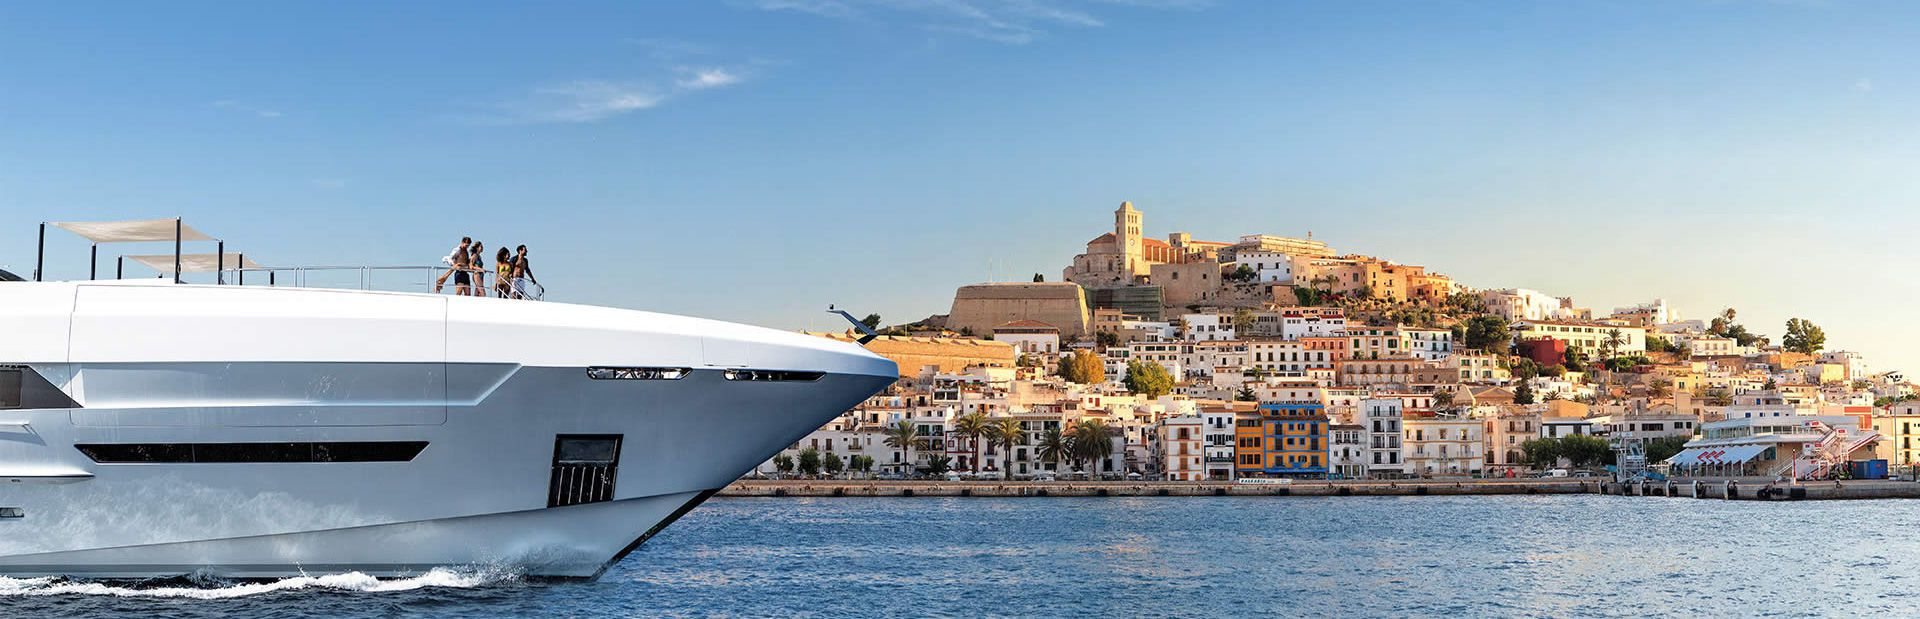 Superyacht being chartered at Ibiza